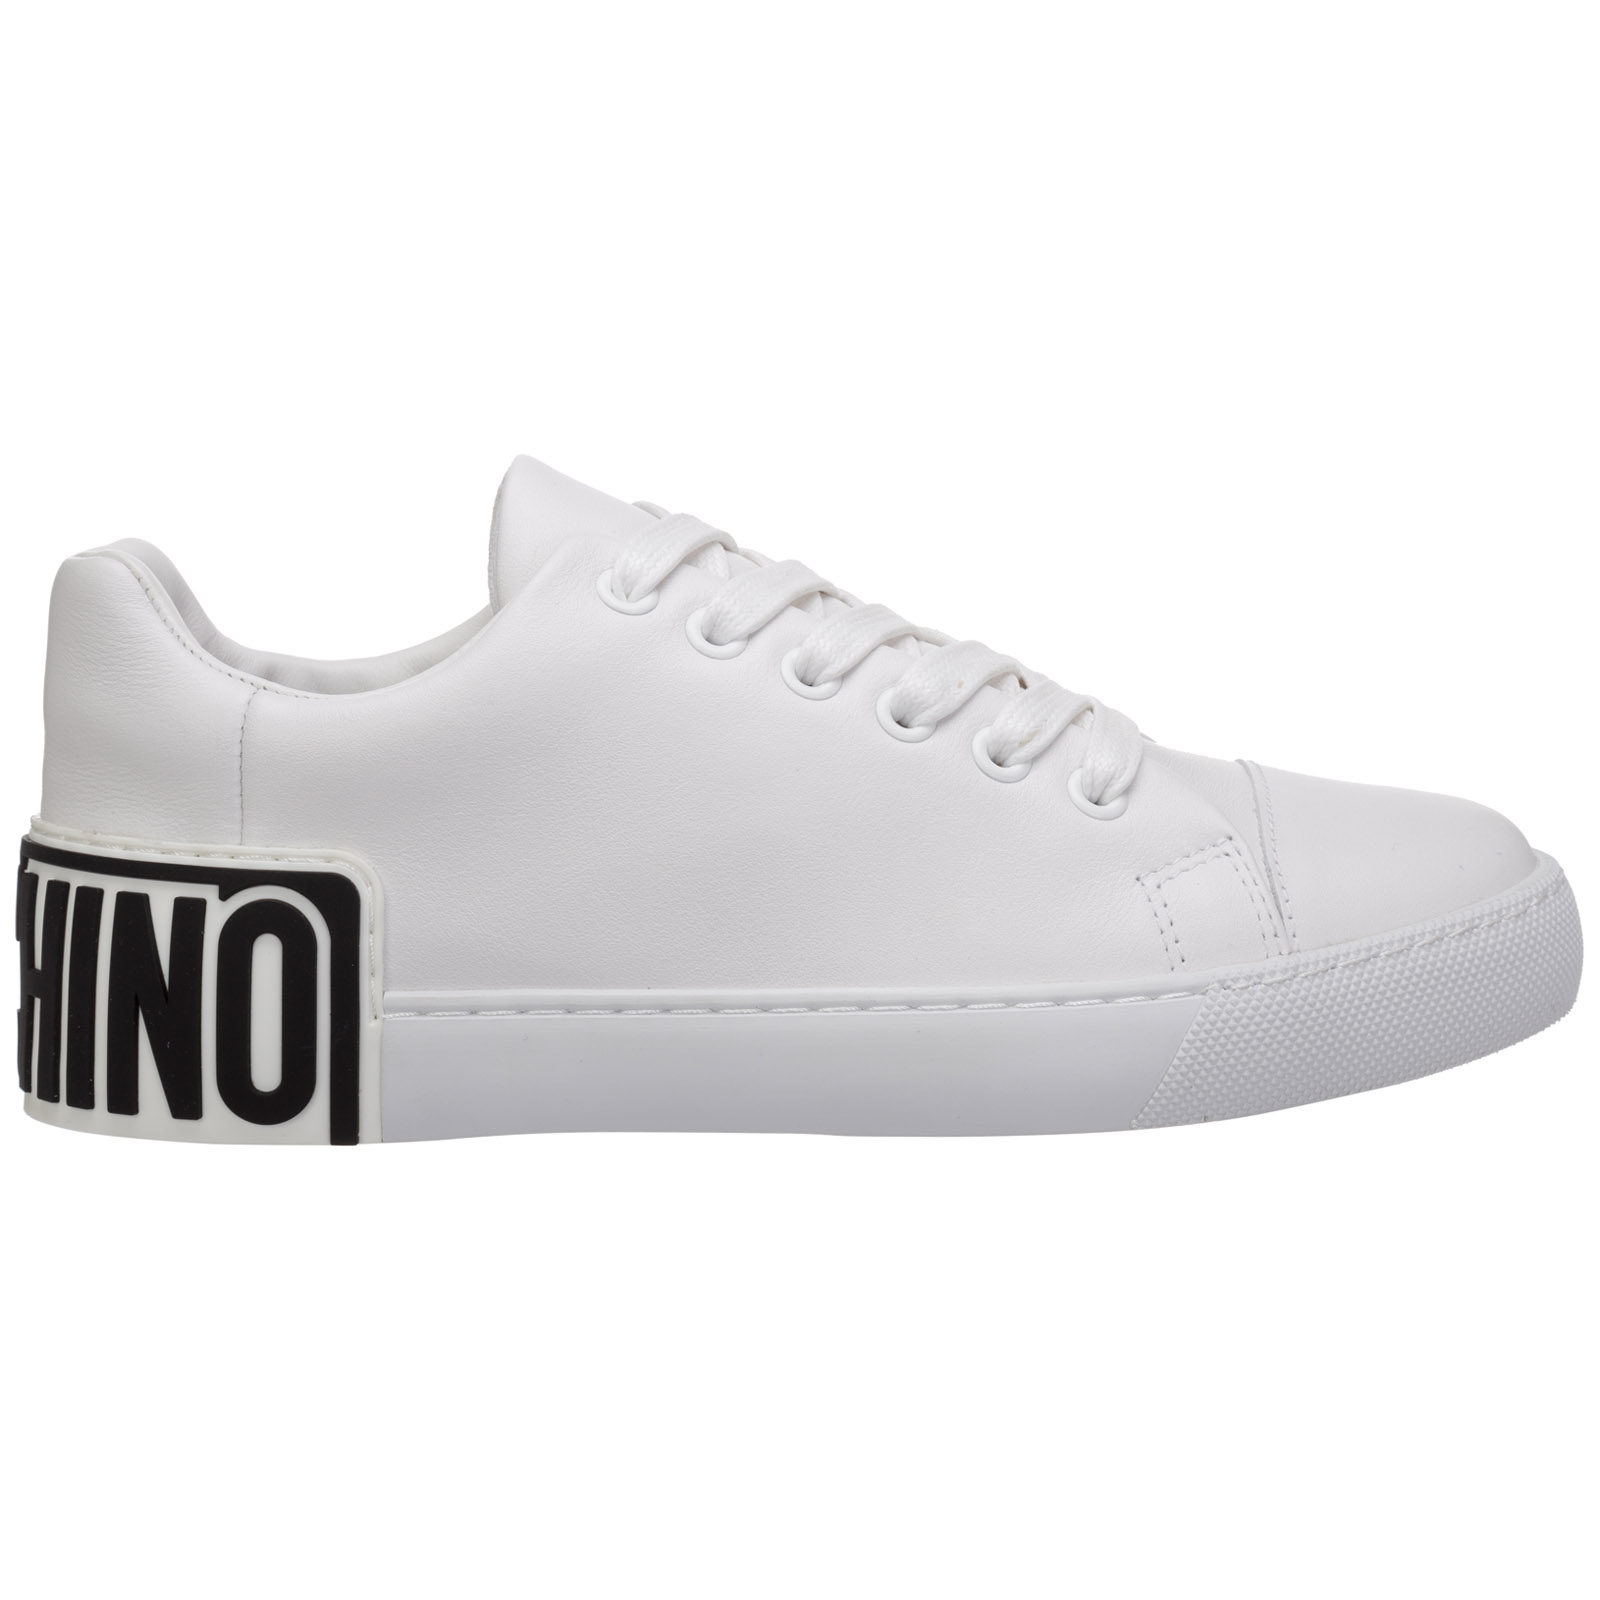 Moschino WOMEN'S SHOES LEATHER TRAINERS SNEAKERS